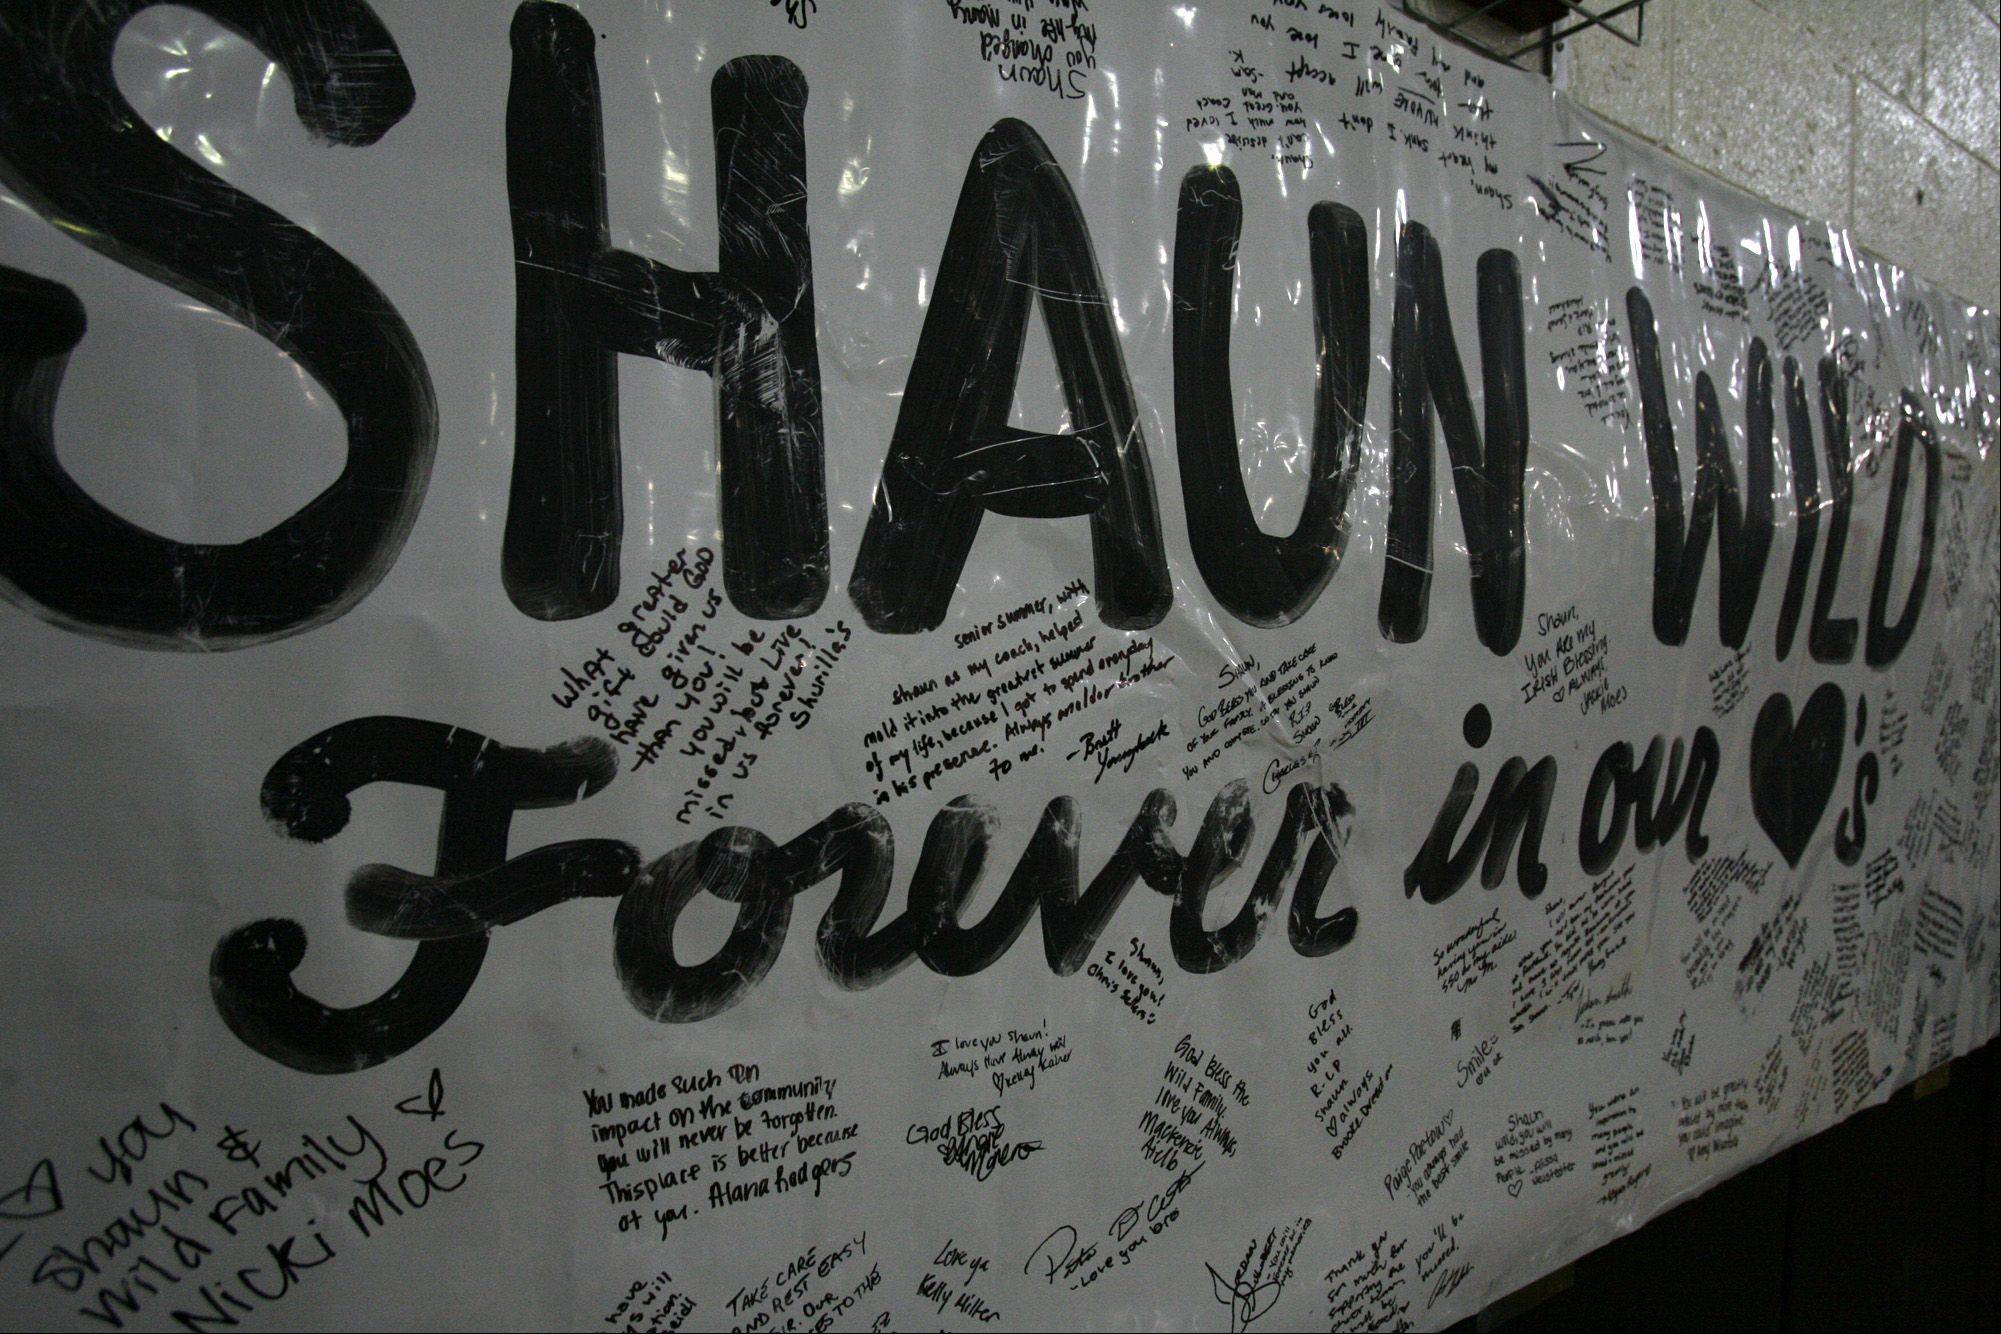 A banner with messages in memory of Shaun Wild was on display before the memorial service.